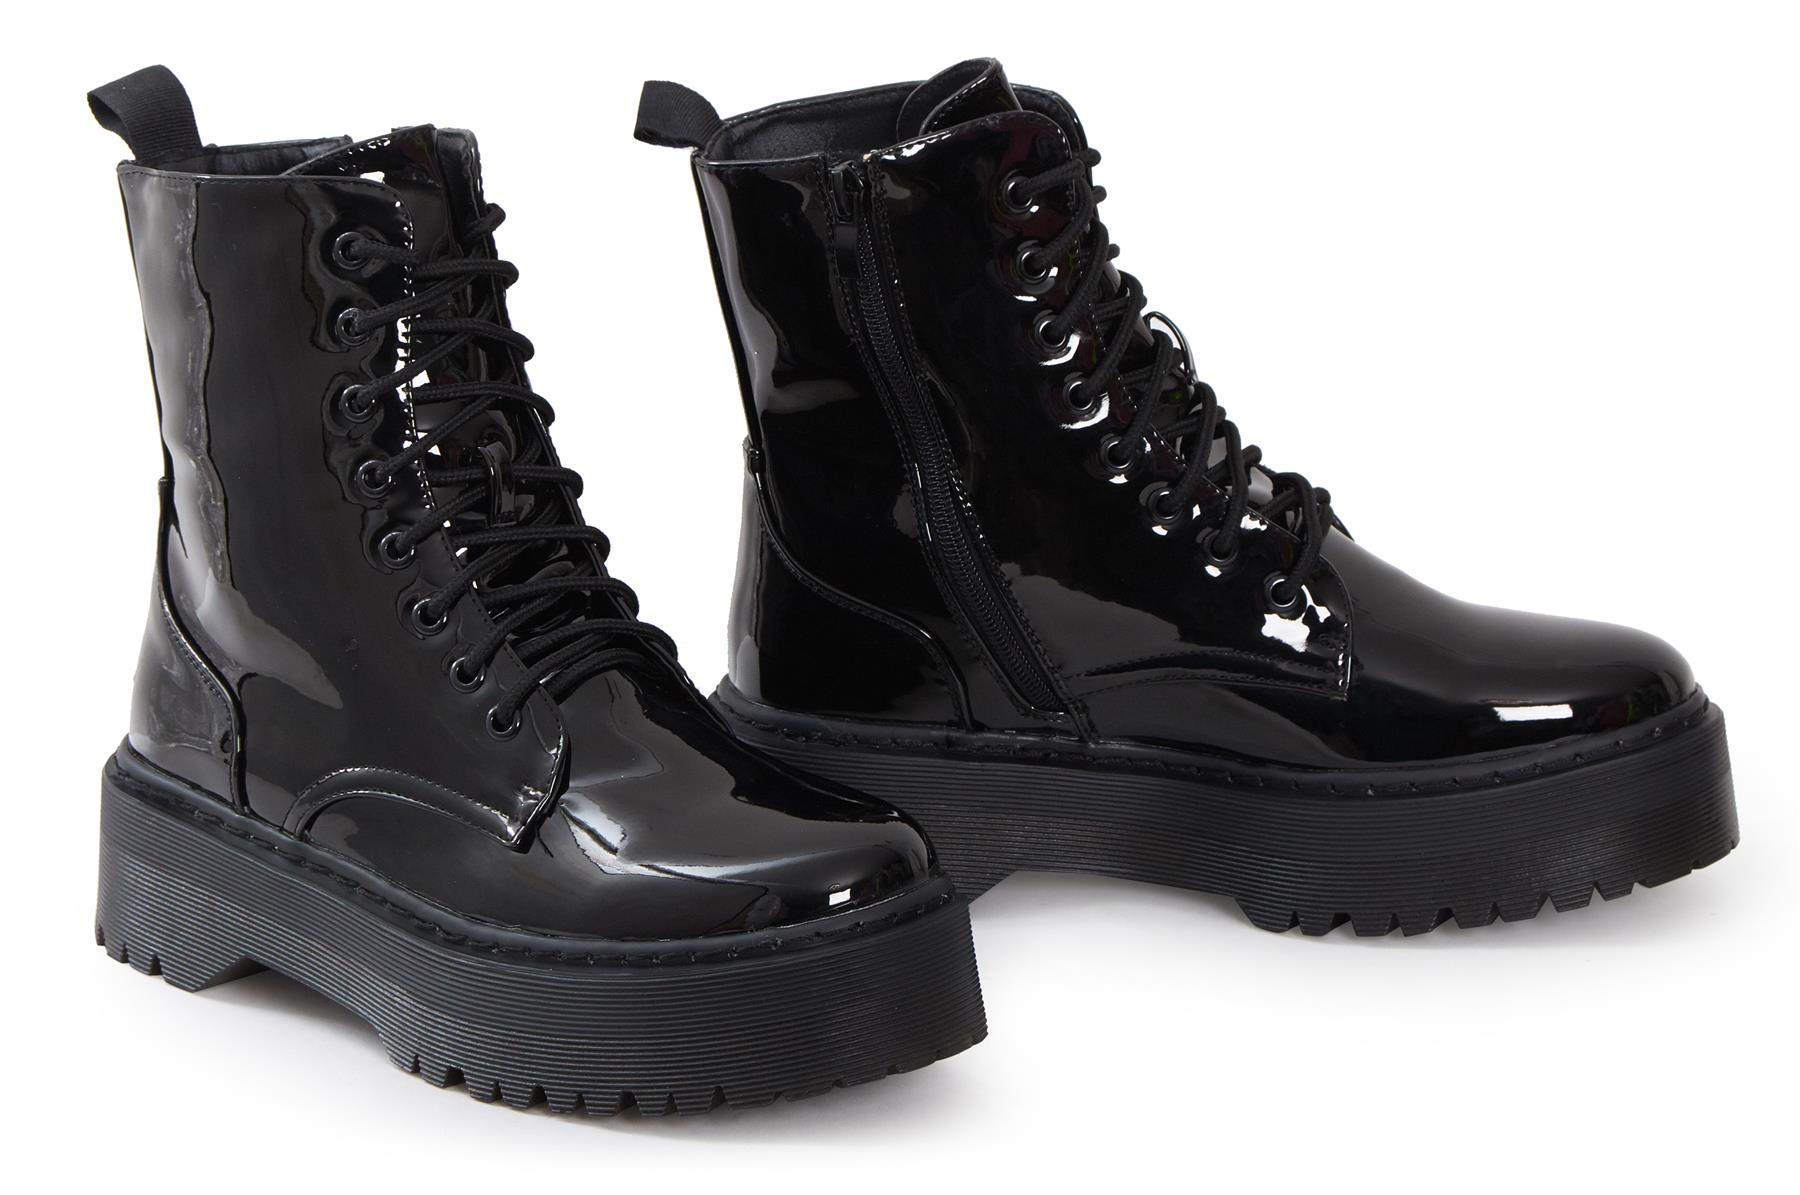 Womens-HiTop-Platform-Military-Punk-Biker-Ankle-PU-Leather-Lace-Up-Vintage-Boots thumbnail 7